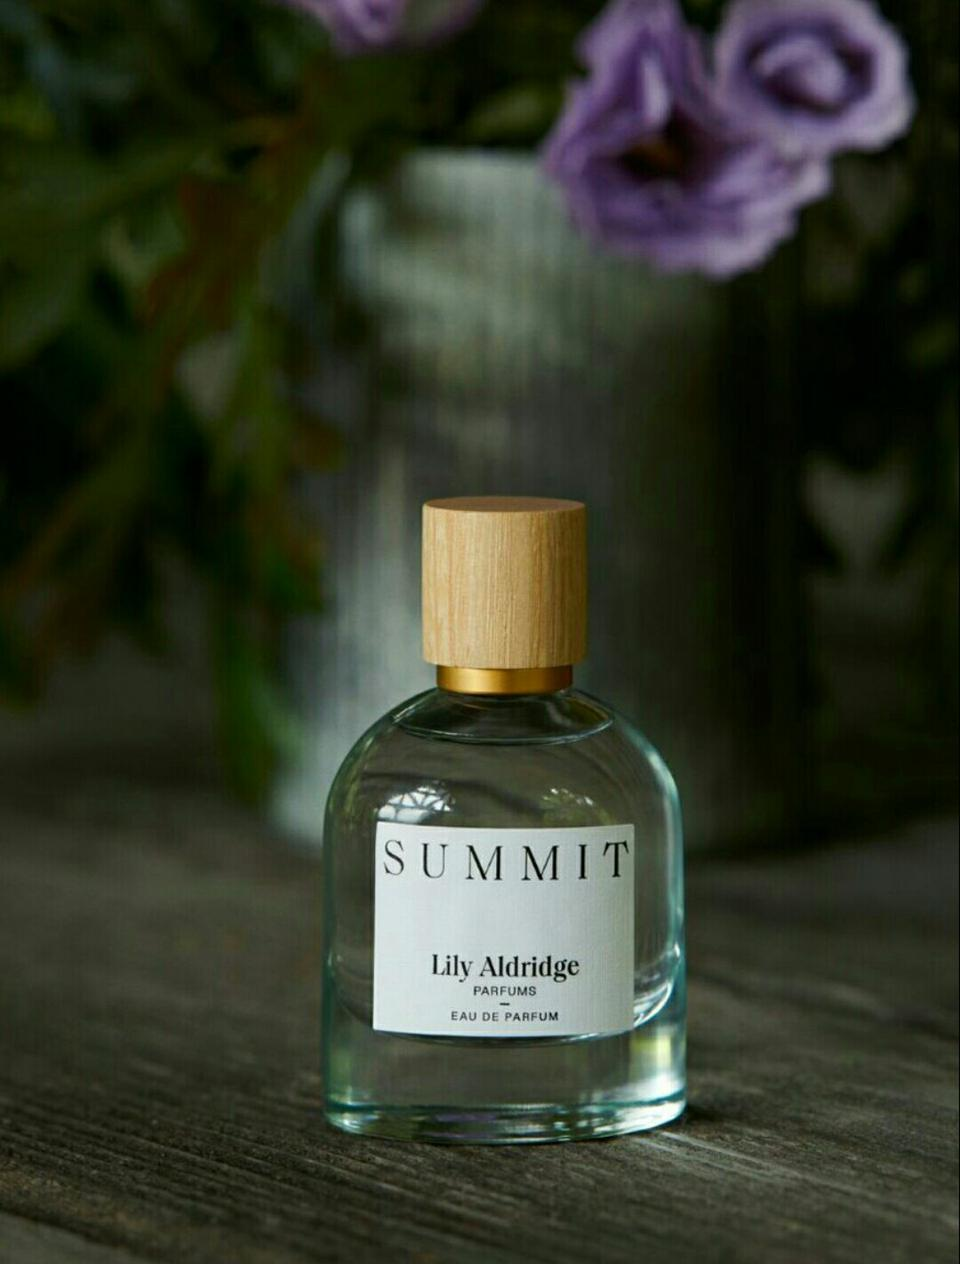 Summit by Lily Aldridge Parfums